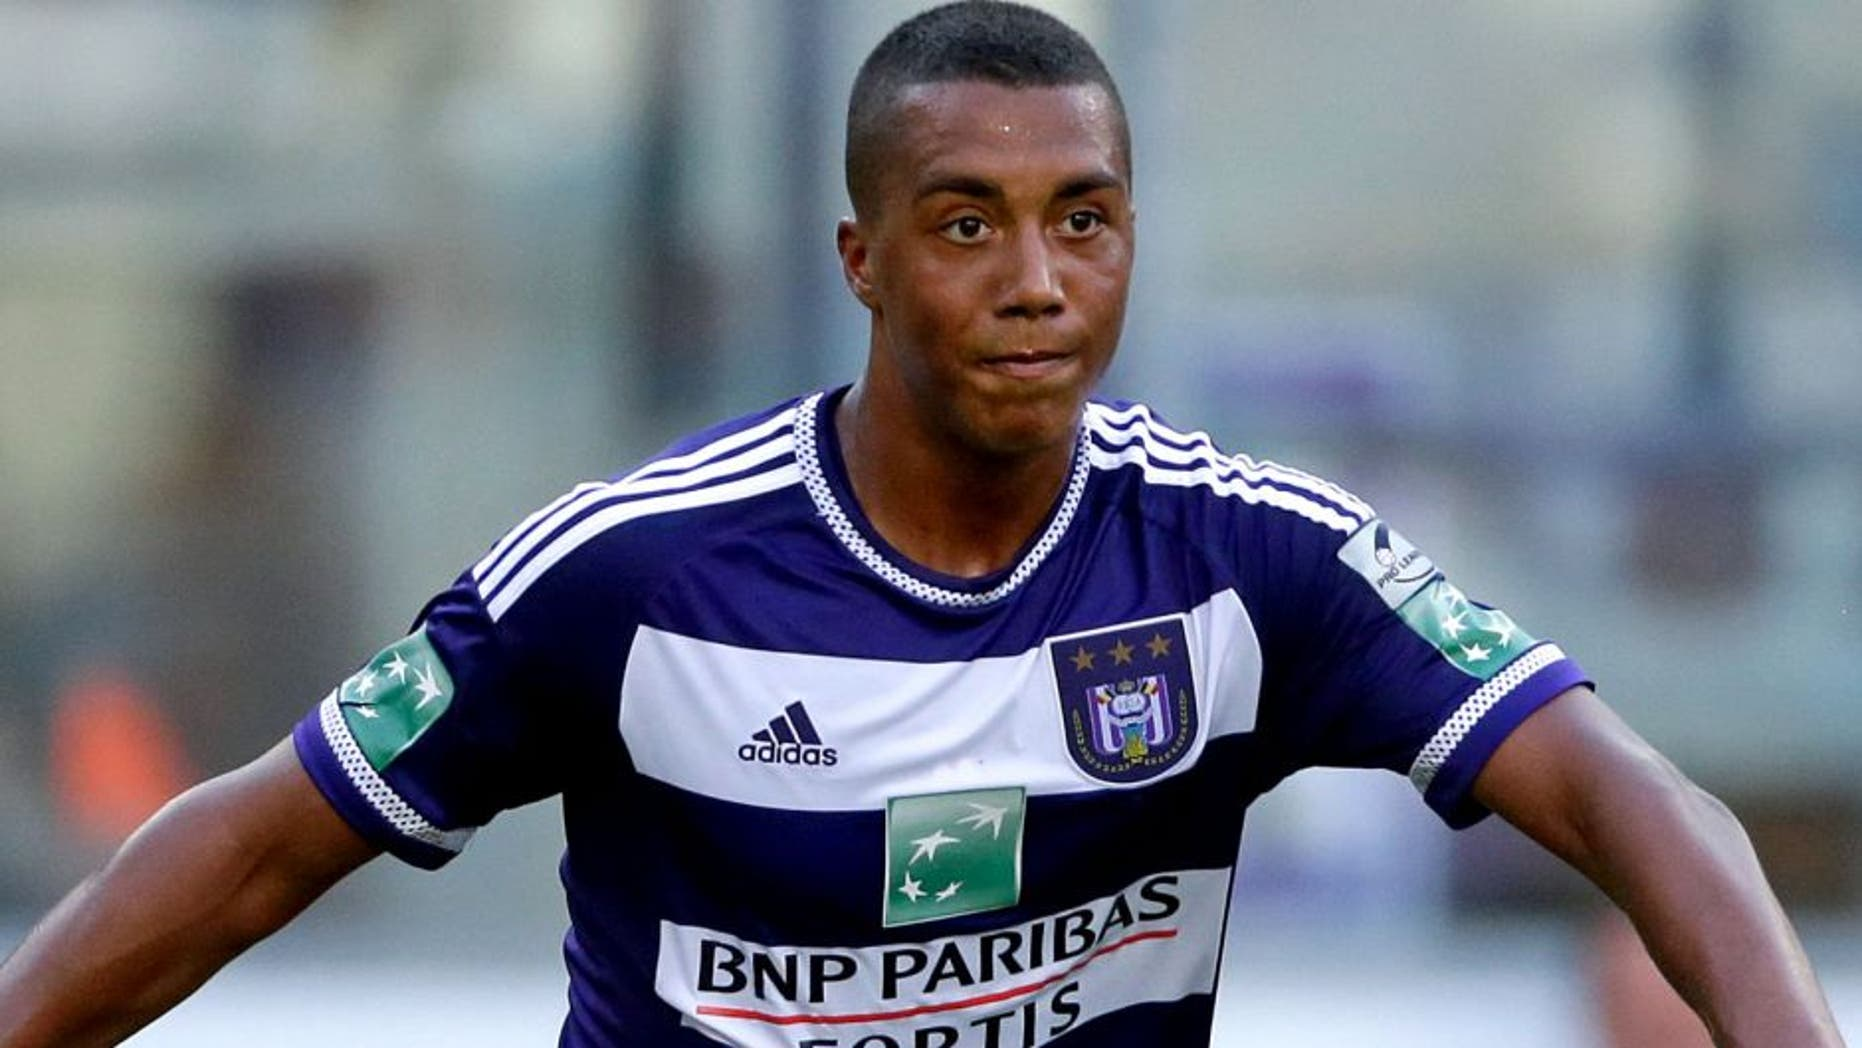 Youri Tielemans of Anderlecht during the pre-season friendly match between RSC Anderlecht and SS Lazio Roma on July 19, 2015 at the Constant Vanden Stock stadium in Brussels, Belgium.(Photo by VI Images via Getty Images)